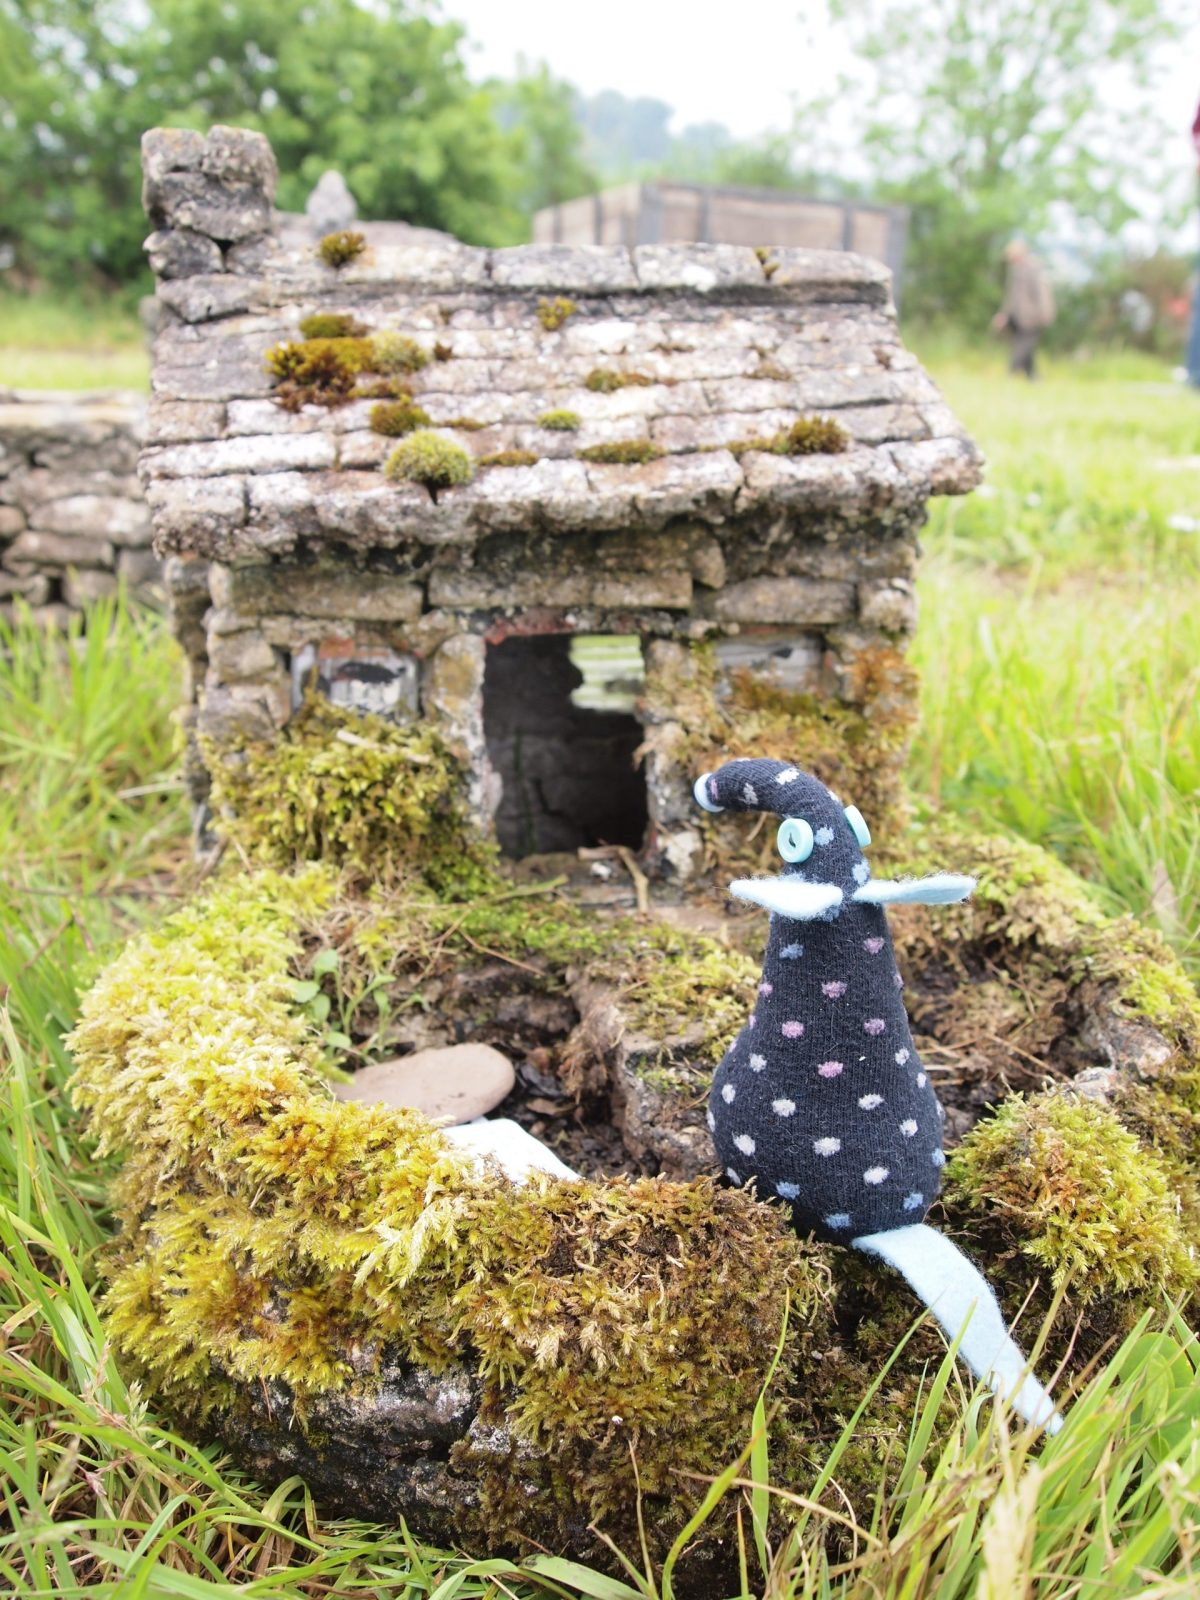 Winston looks at a little concrete garden ornament in the shape of a tumbledown cottage